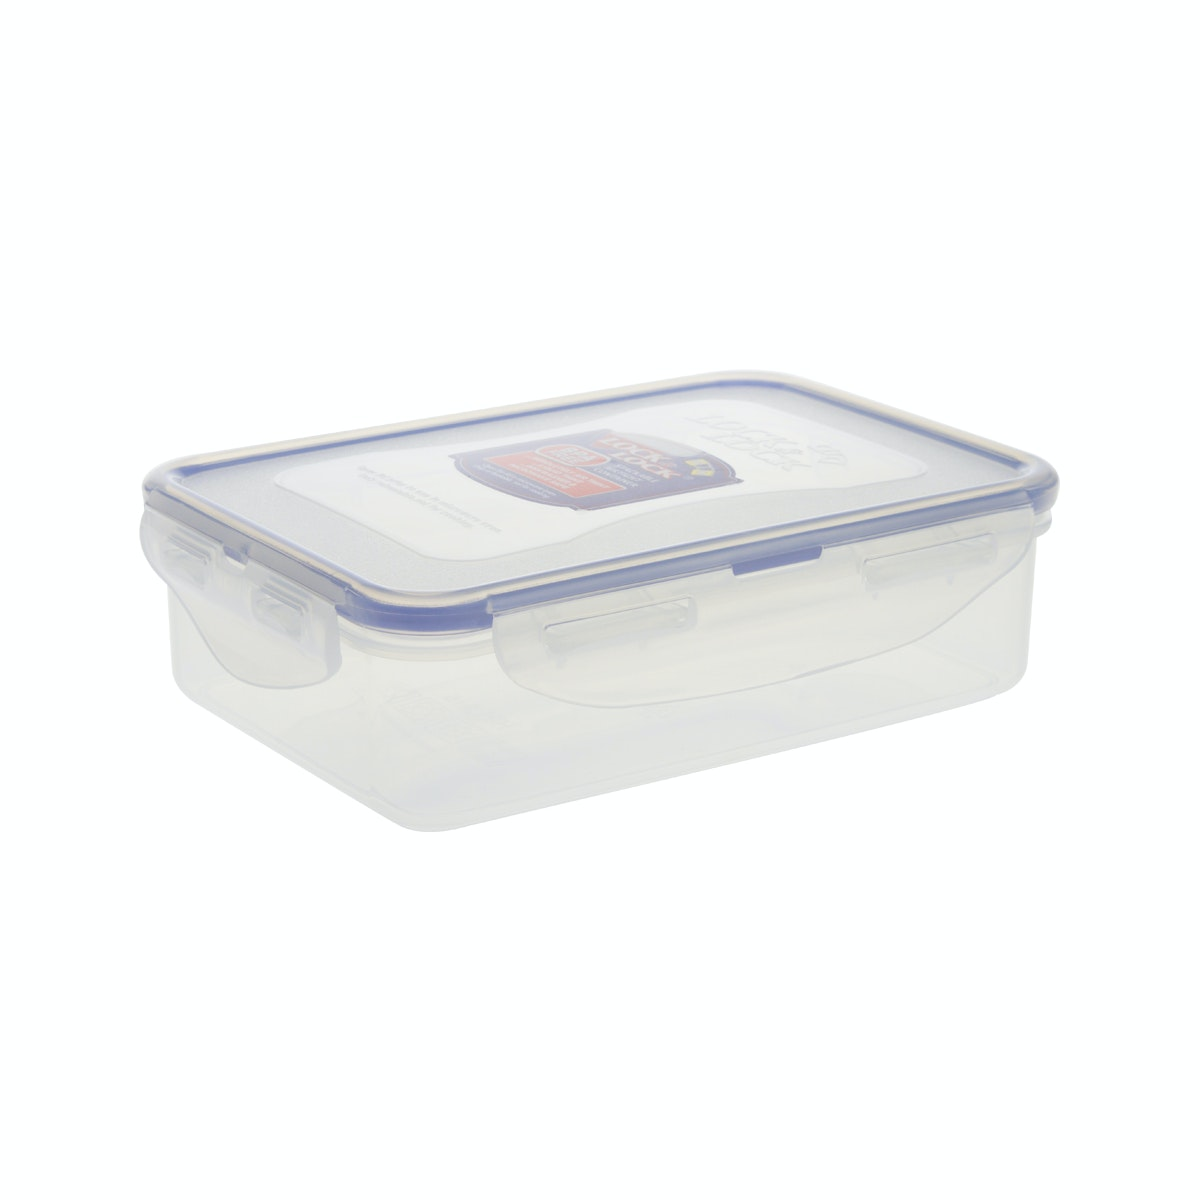 Lock & Lock Rectangular Short Food Container 550ml (HPL815L)